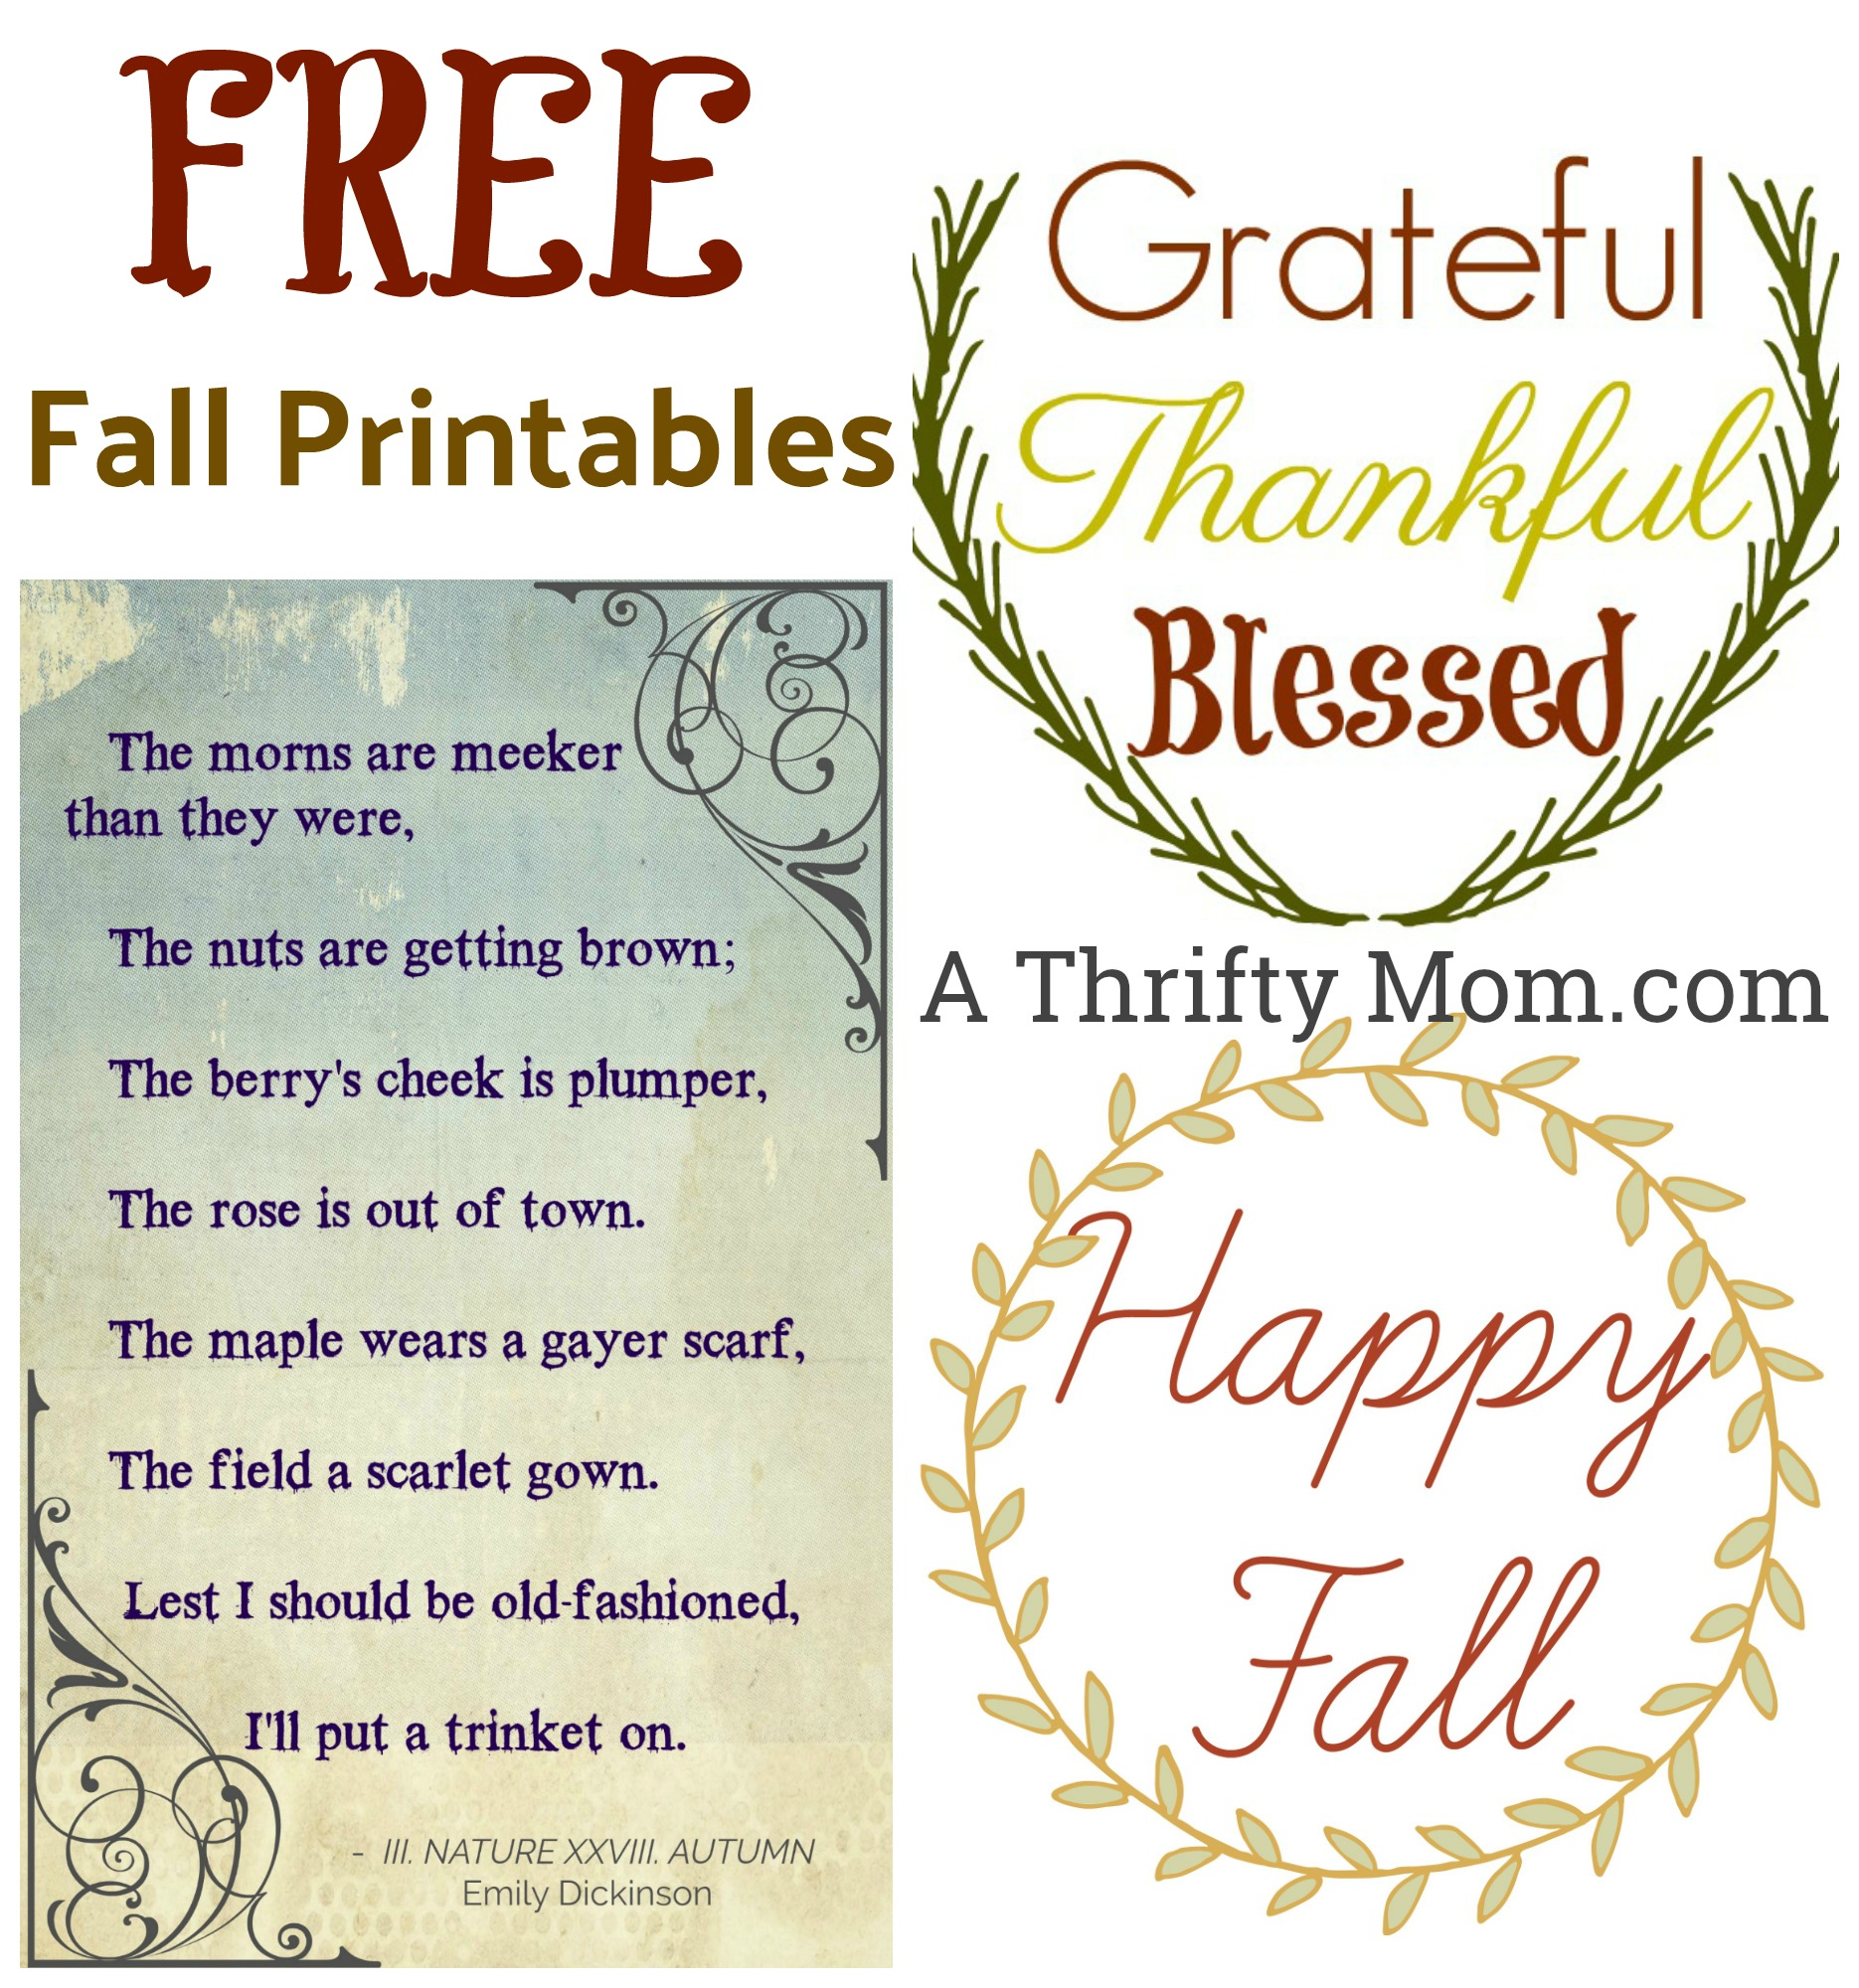 M M Thankful Game Fun Quick Game Of Expressing Gratitude A Thrifty Mom Recipes Crafts Diy And More